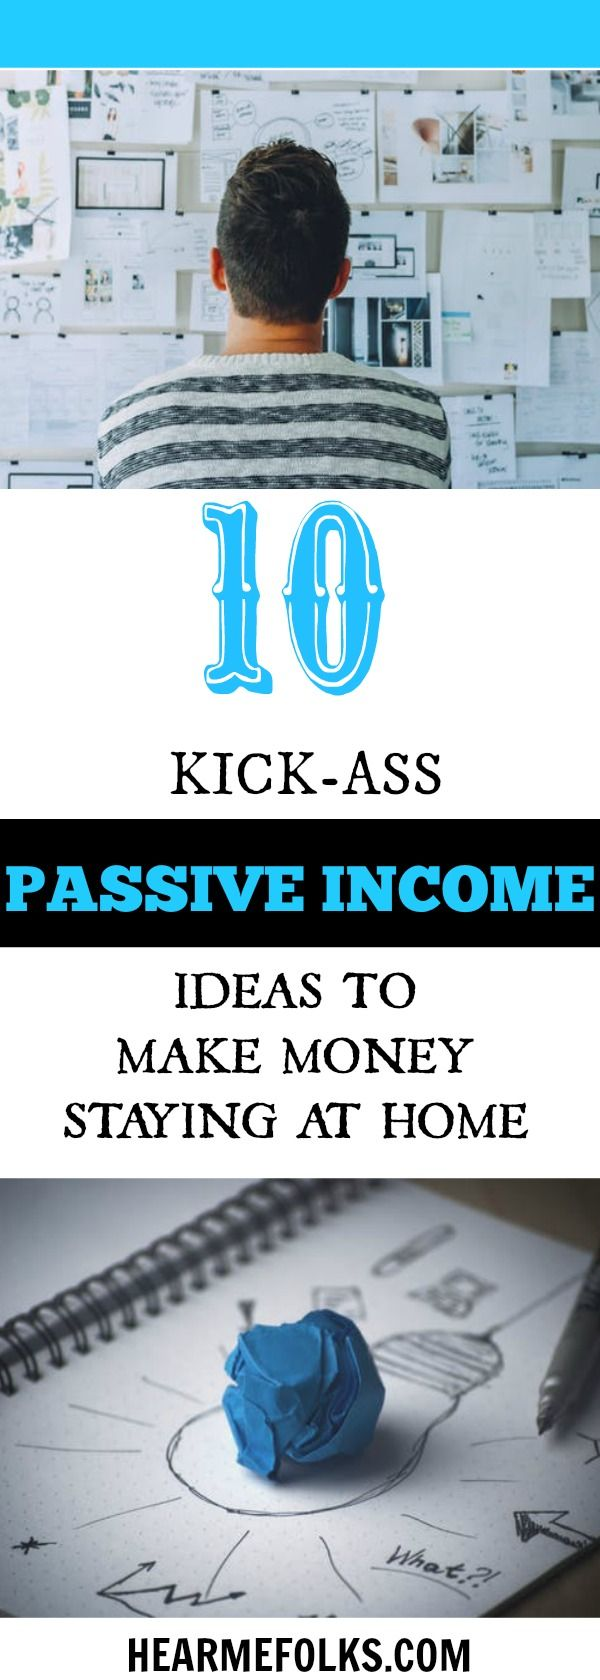 Looking for some cool passive income ideas to make money staying at home? Then get to know these top 10 passive income streams that actually work right now. http://www.hearmefolks.com/best-passive-income-ideas